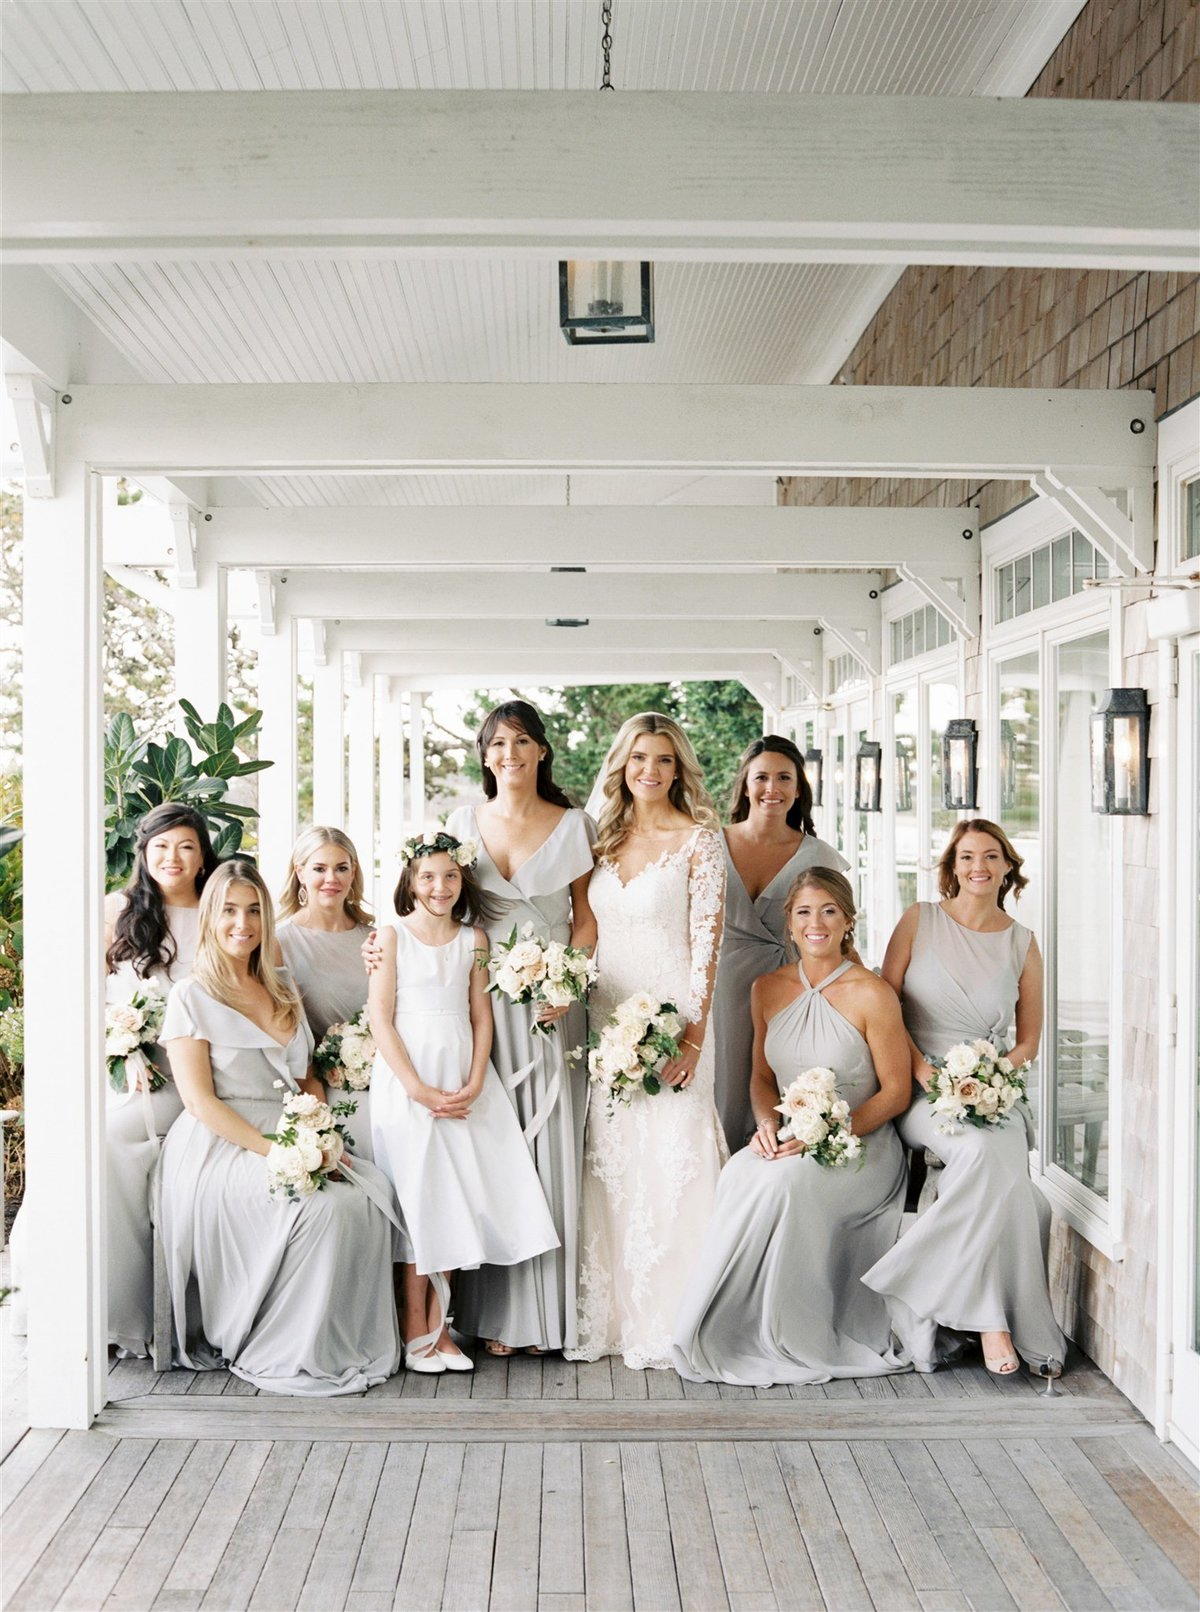 Earl Gray Jenny Yoo bridesmaids dresses for a Cape Cod Wedding by luxury Cape Cod wedding planner and designer Always Yours Events